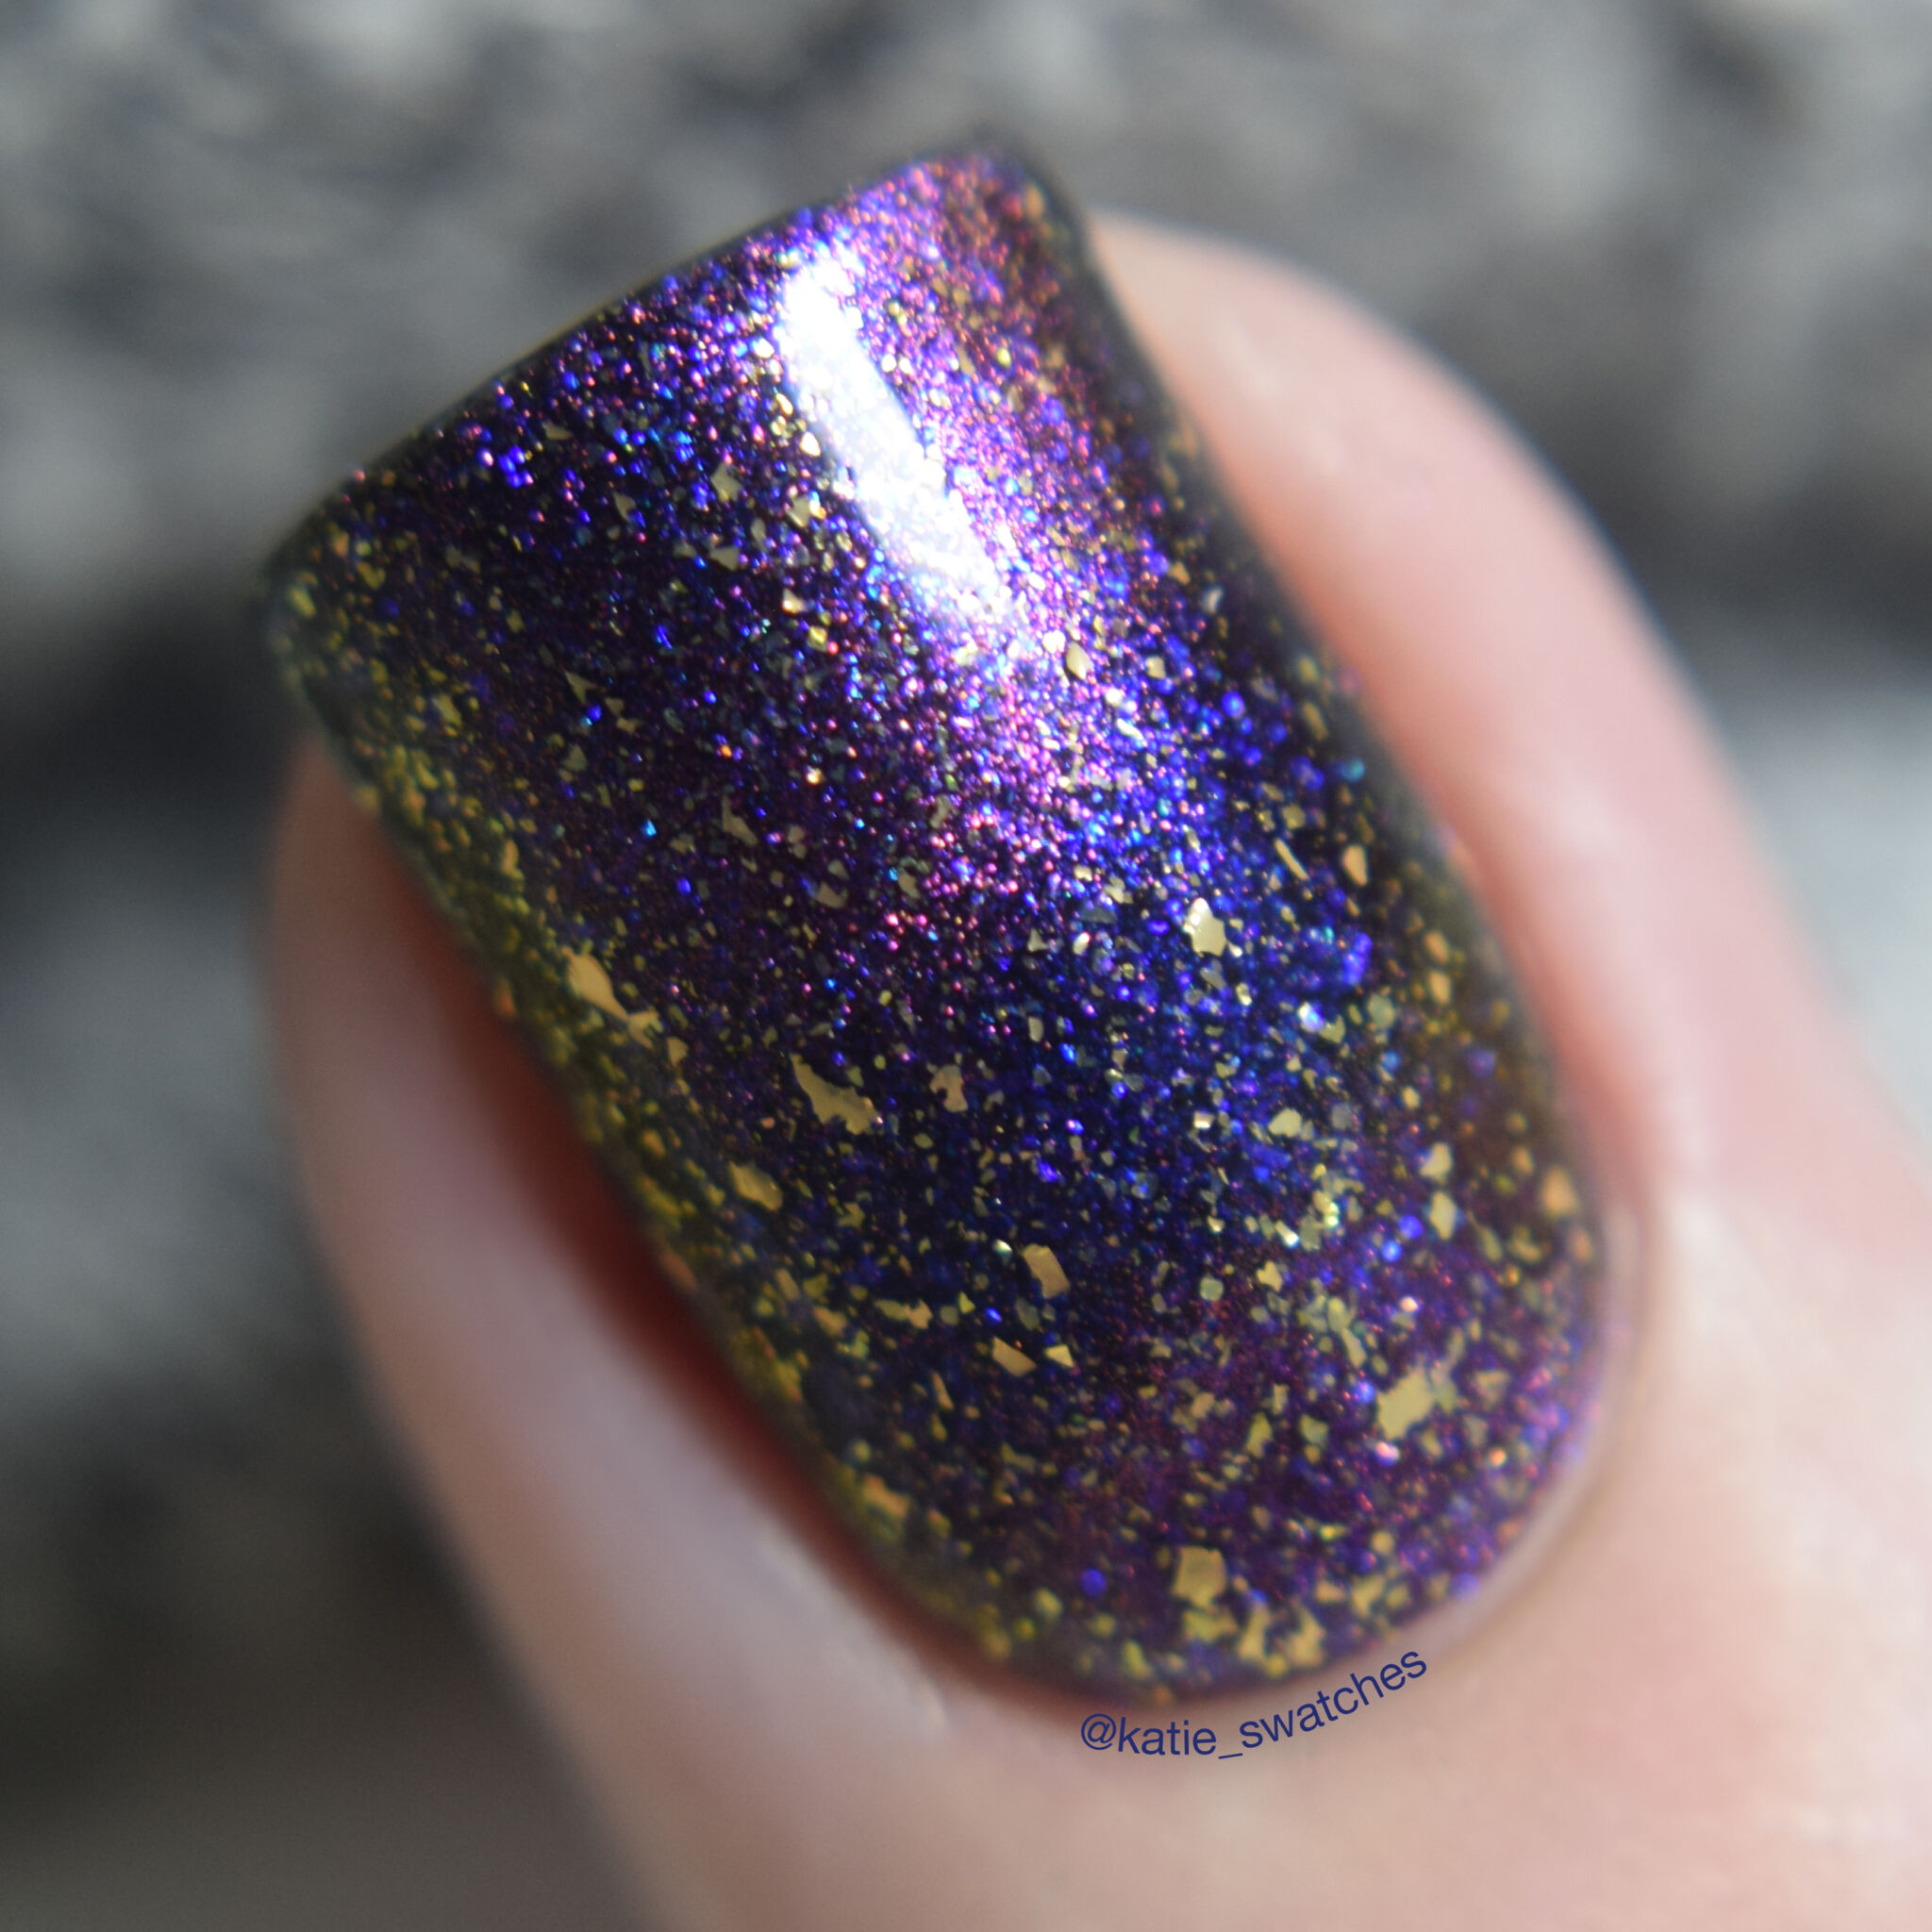 Cuticula Wonderstruck gold flake top coat layered over Polished for Days Started With A Mouse magnetic nail polish swatch - Polish Pickup February 2019 Duos & Pairs Collection